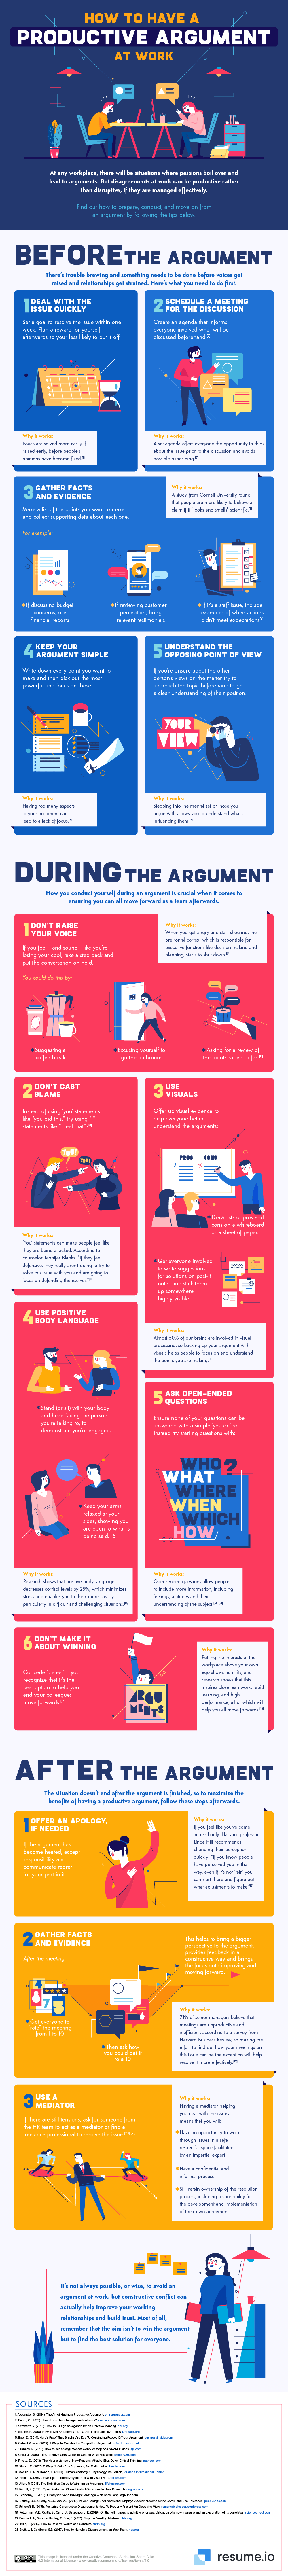 Productive argument at work infographic